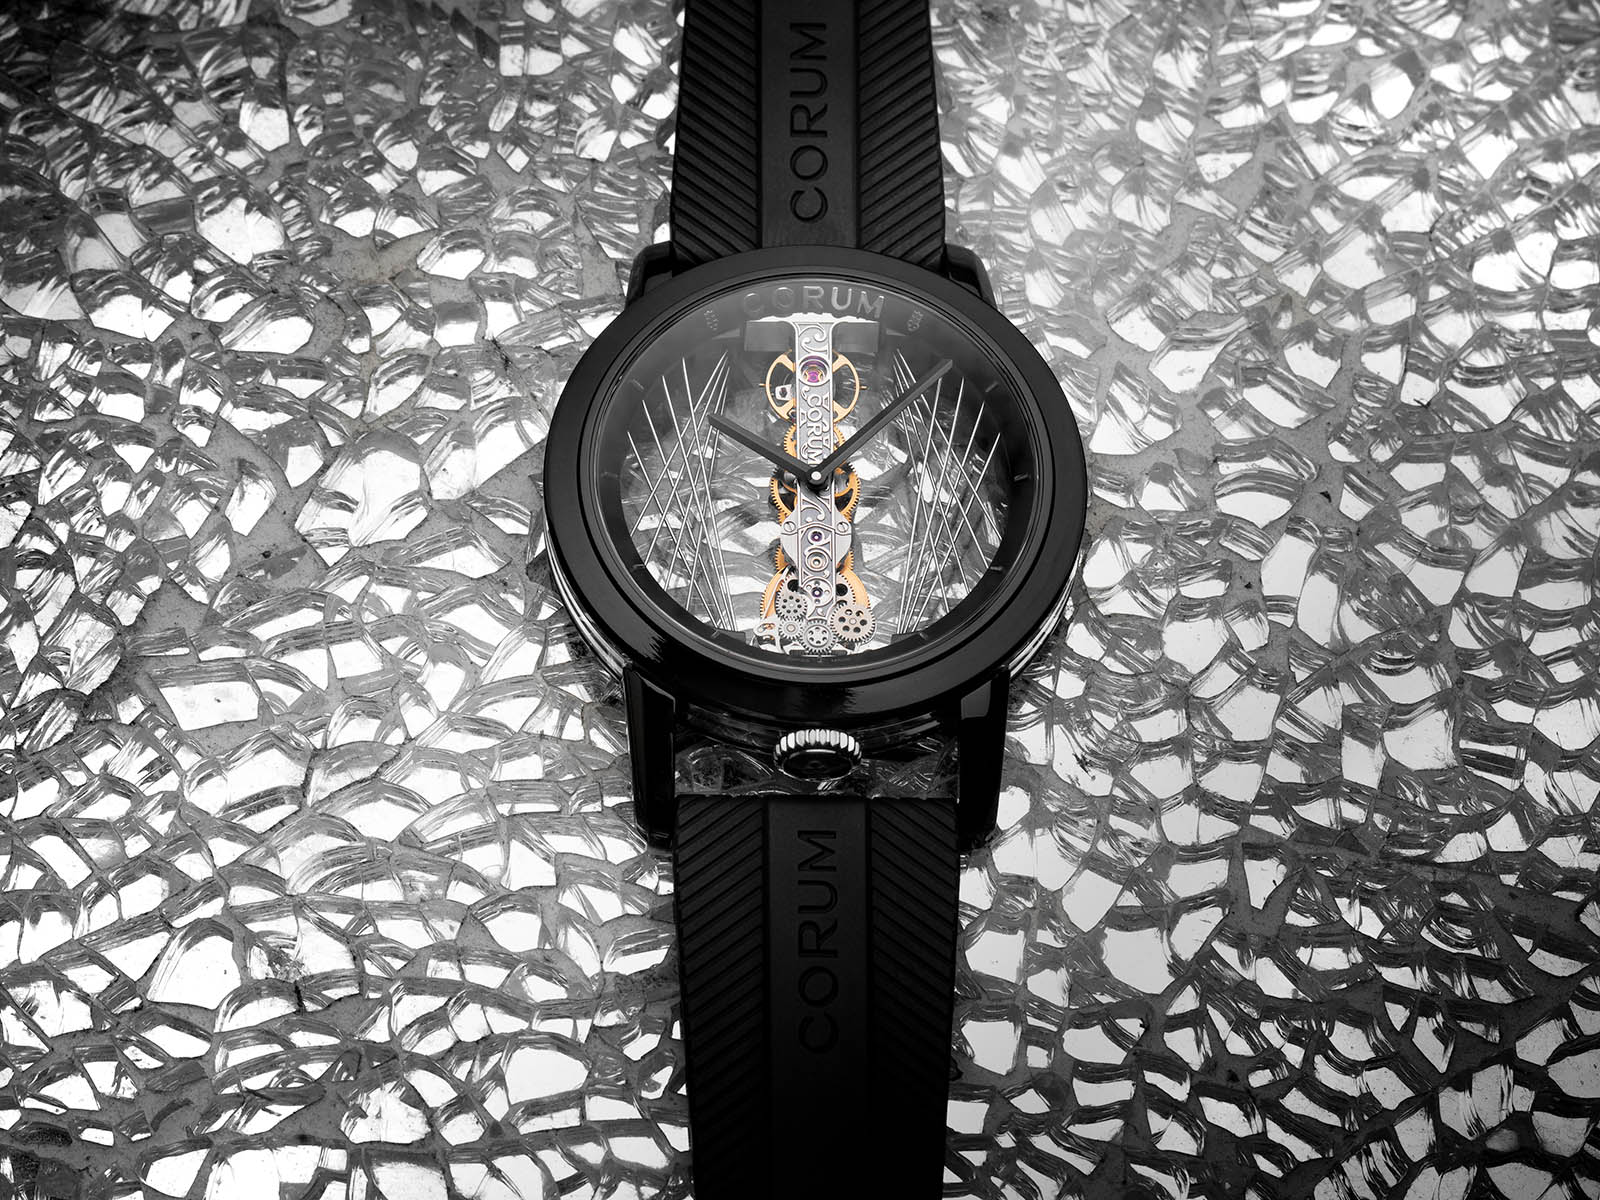 b113-03952-corum-golden-bridge-round-43-art-deco-1.jpg